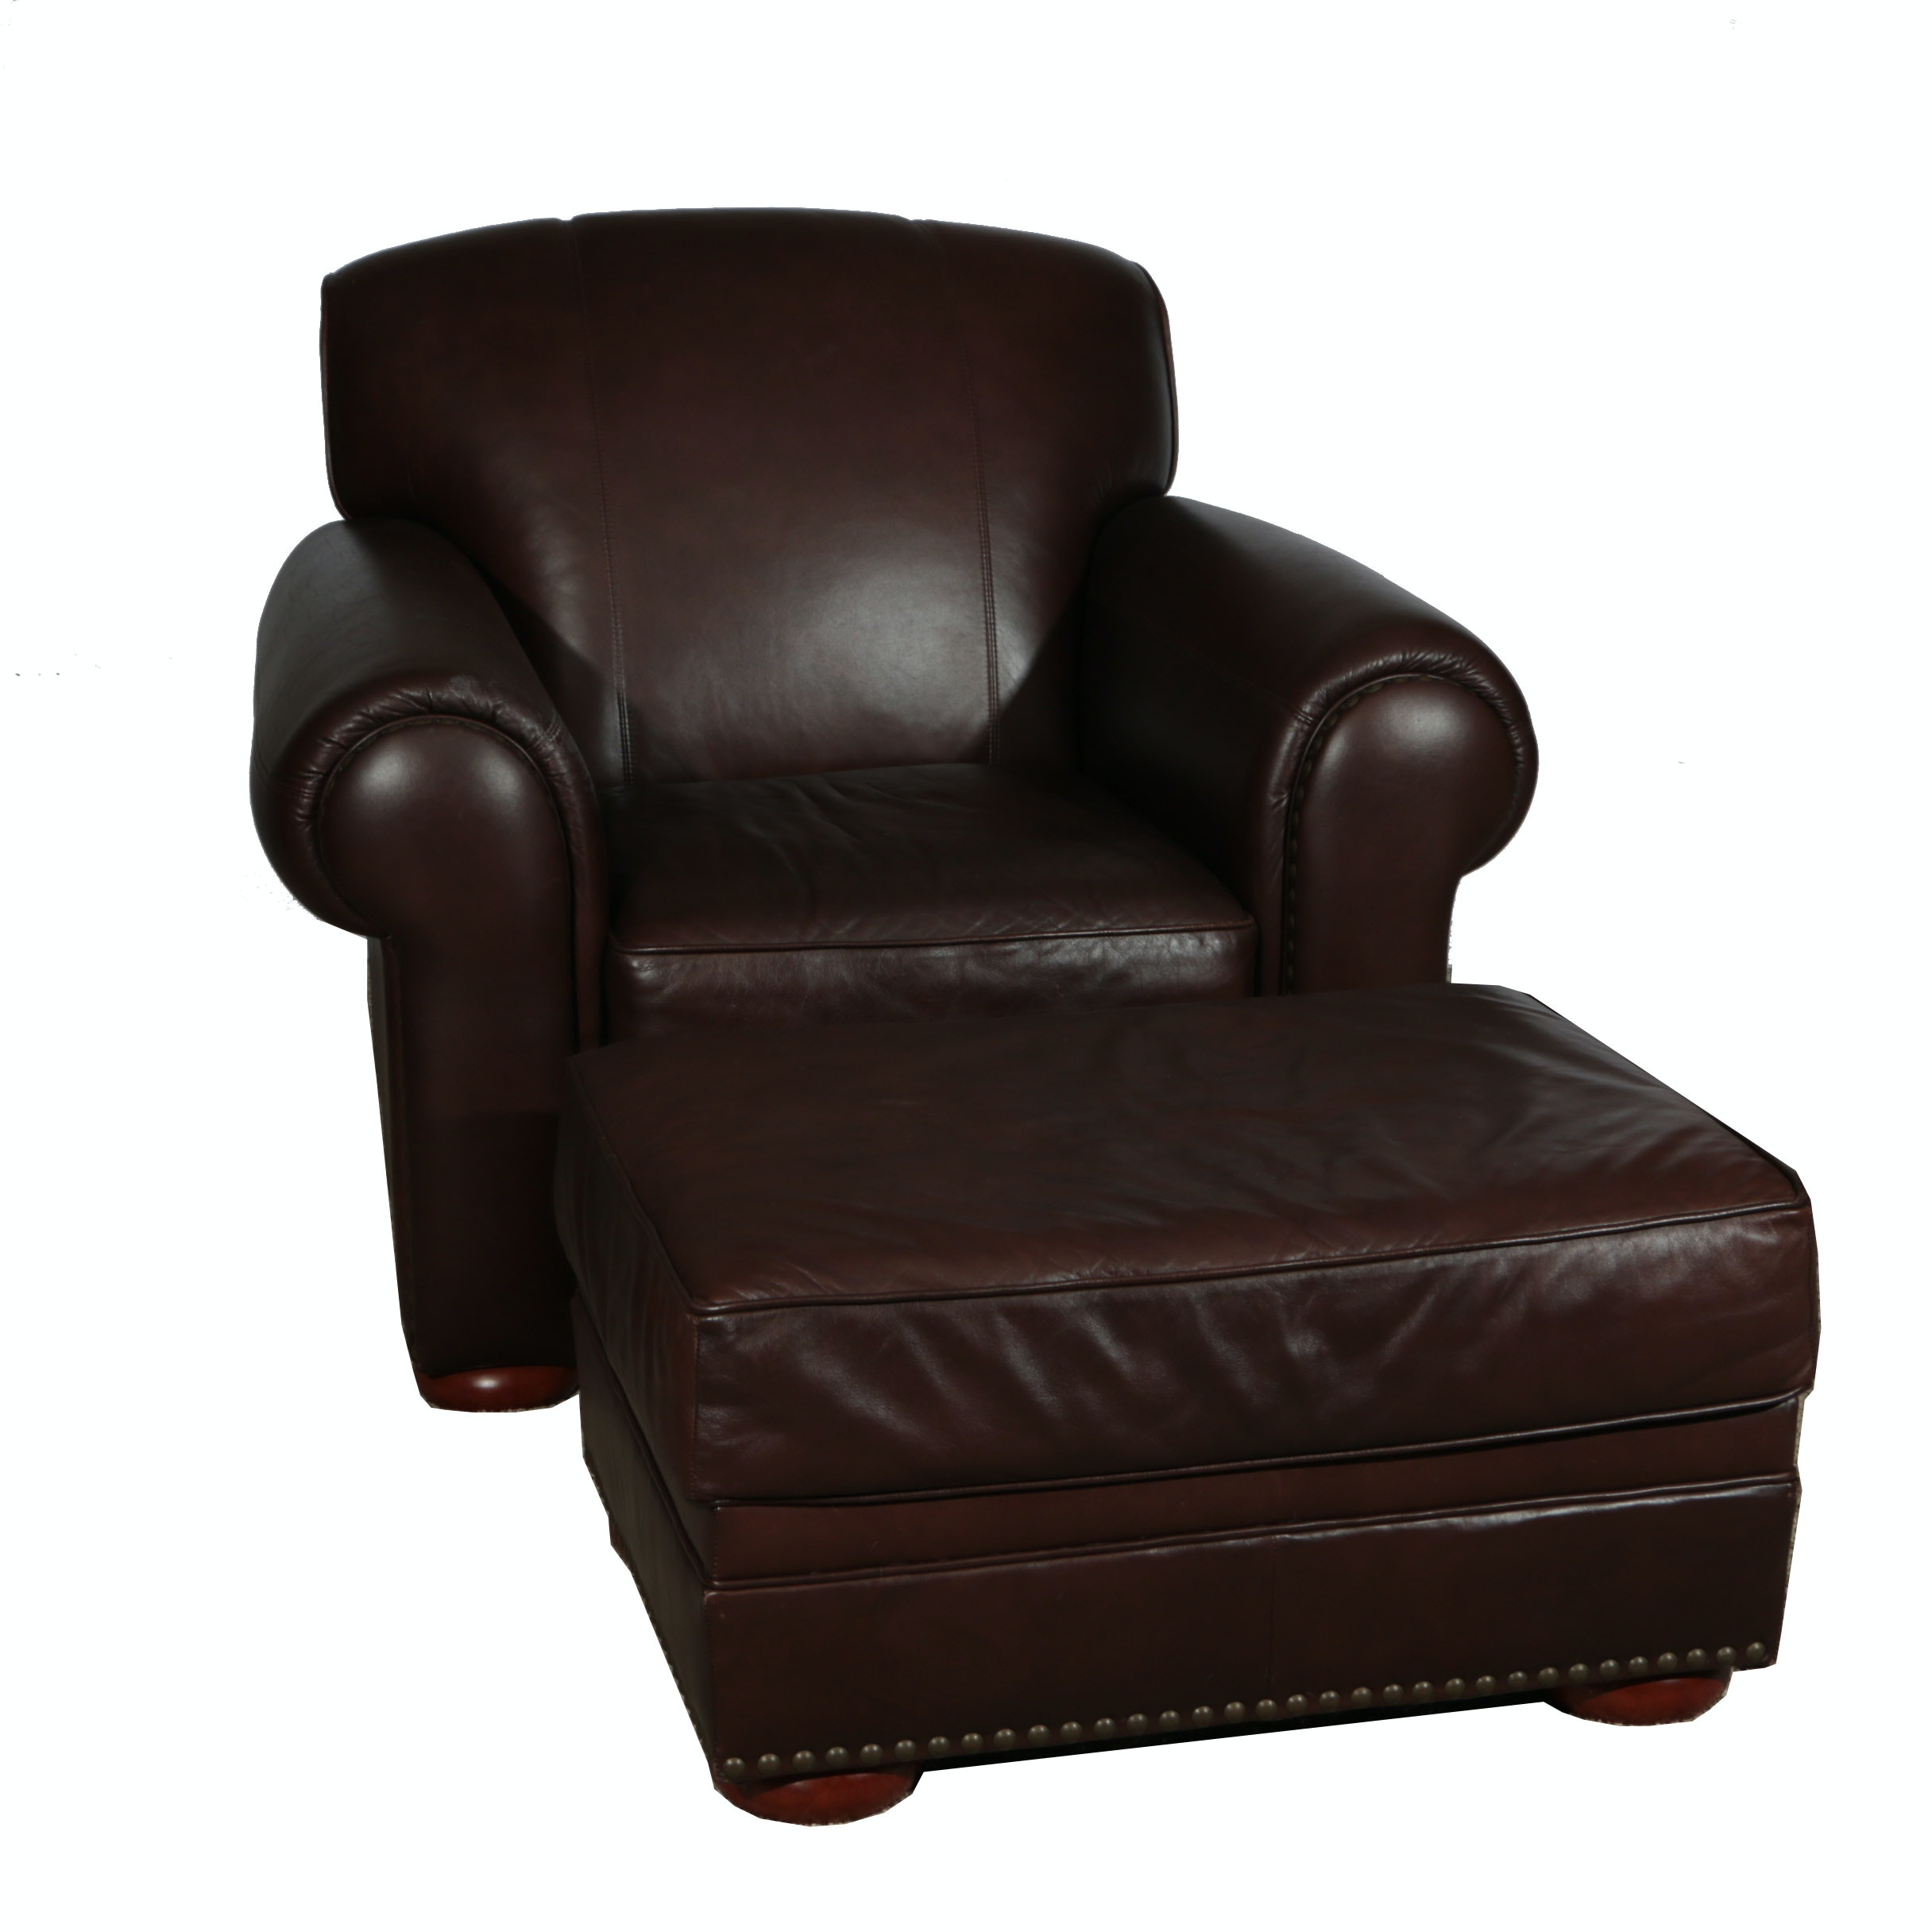 Genial Dark Brown Leather Chair And Ottoman ...